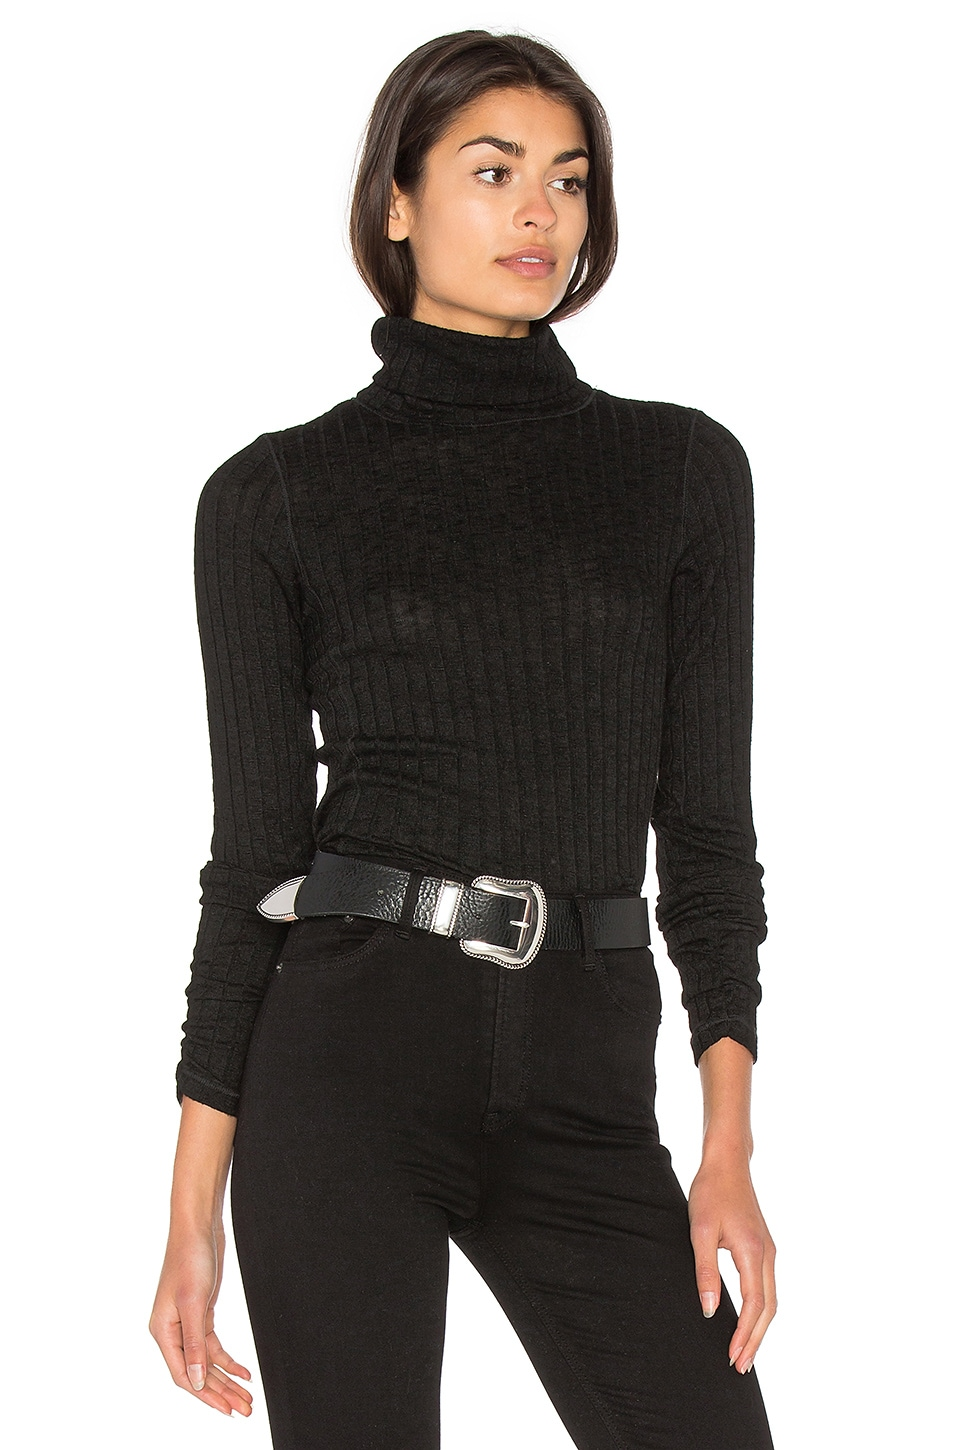 Long Sleeve Turtleneck Top by Michael Stars